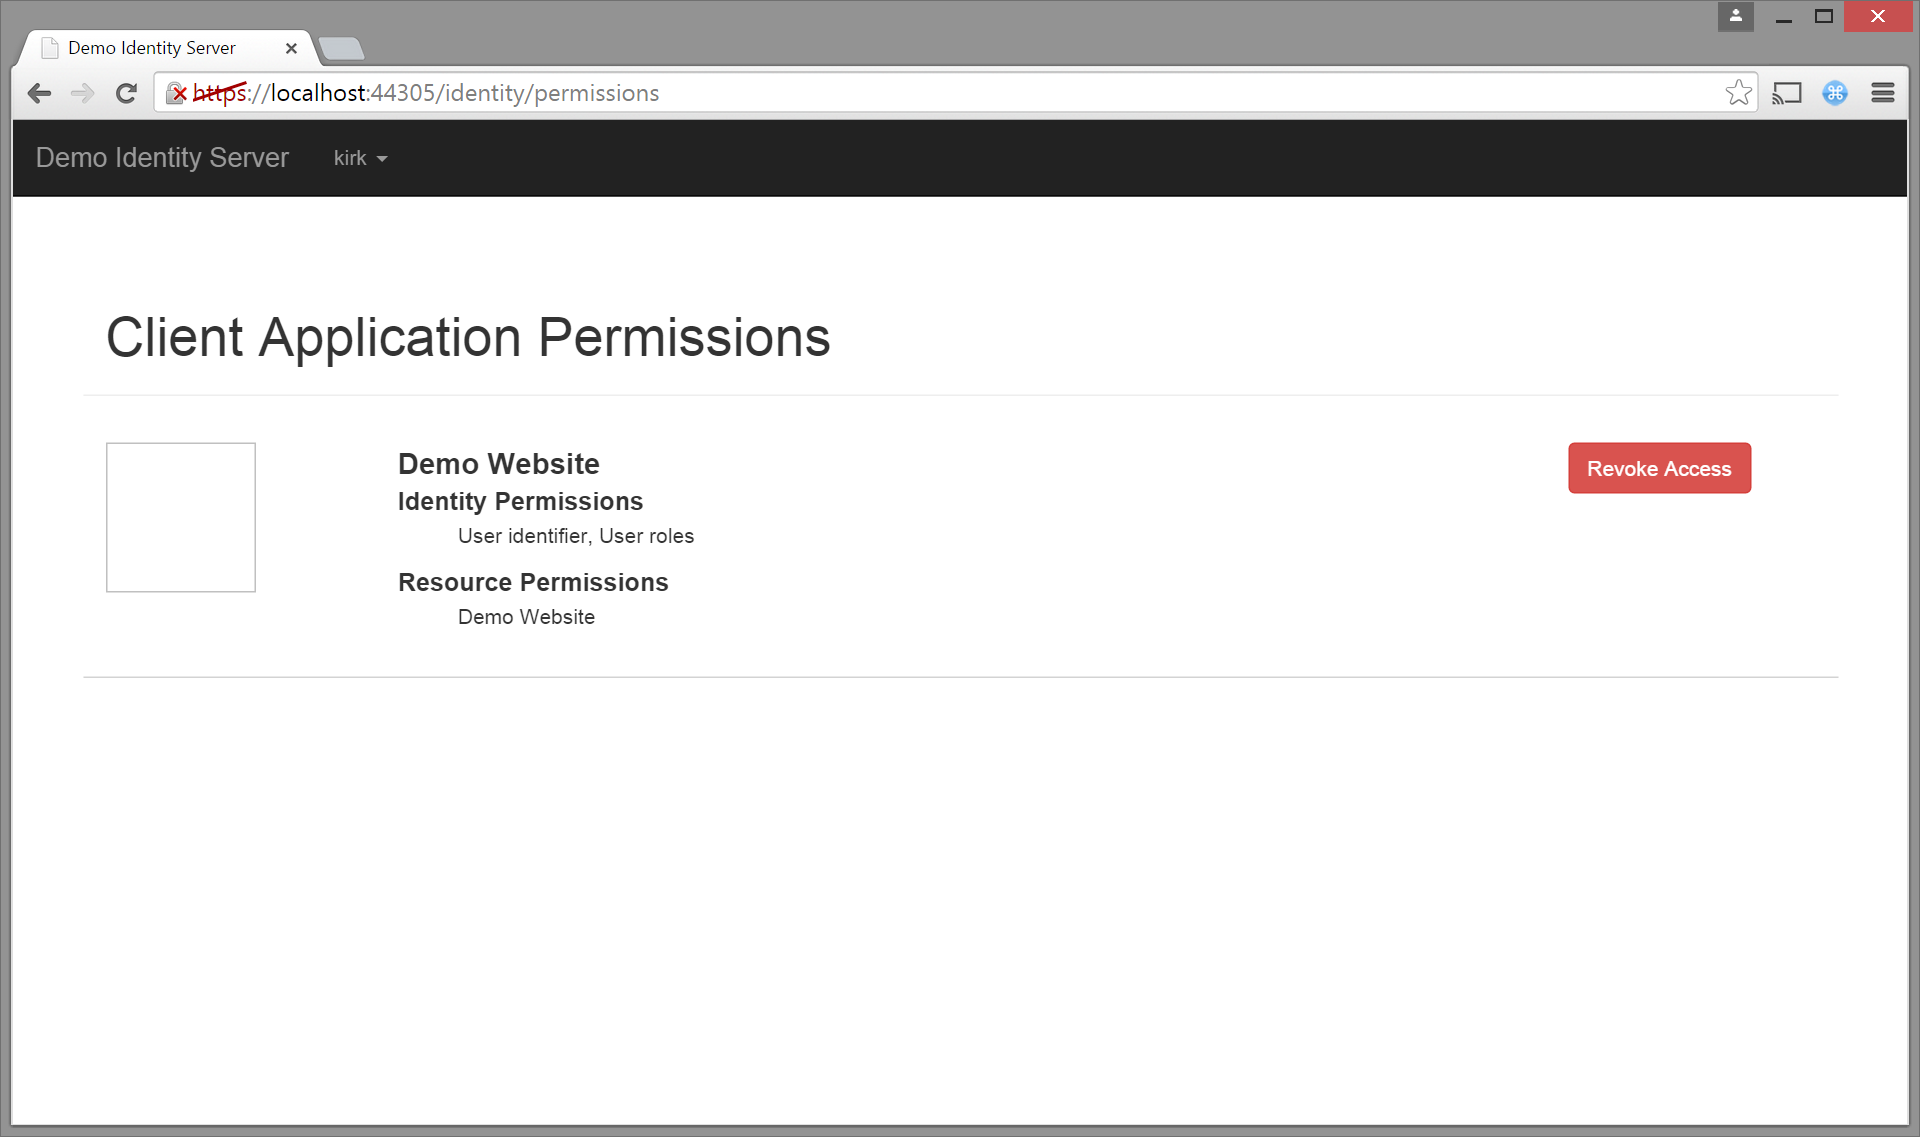 Identity Server permissions view